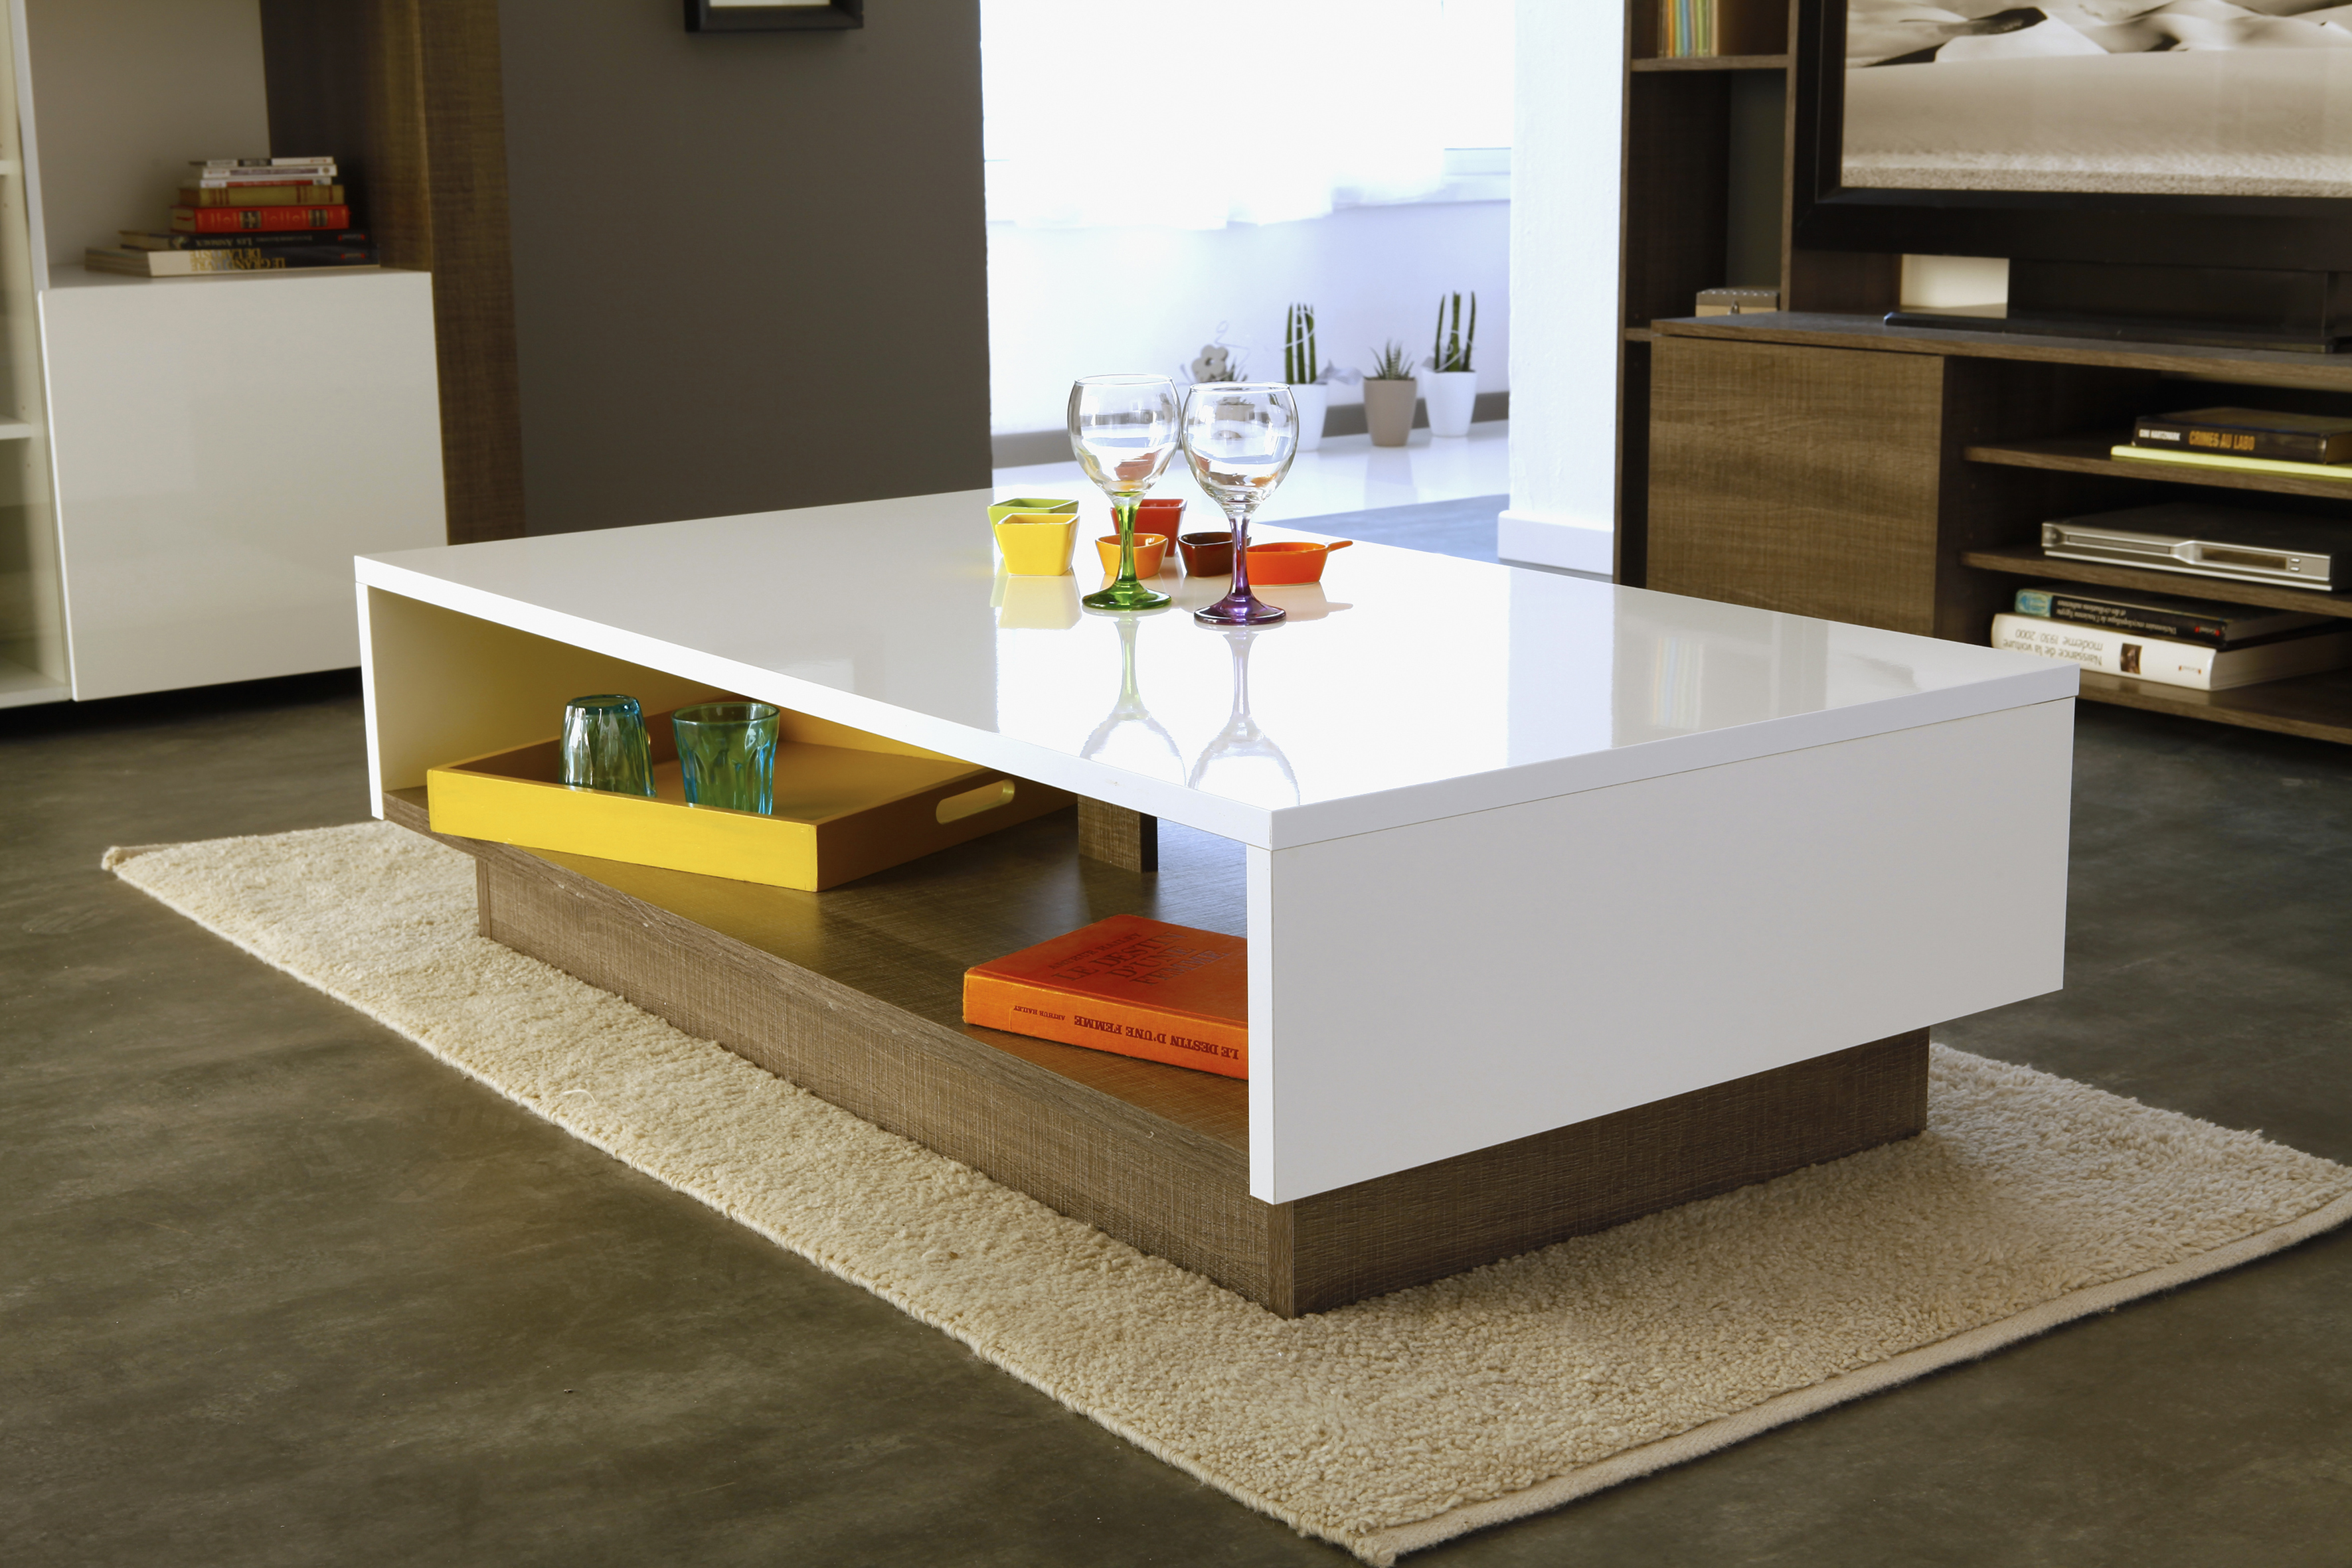 Table basse design grise et blanc - Table basse grise design ...